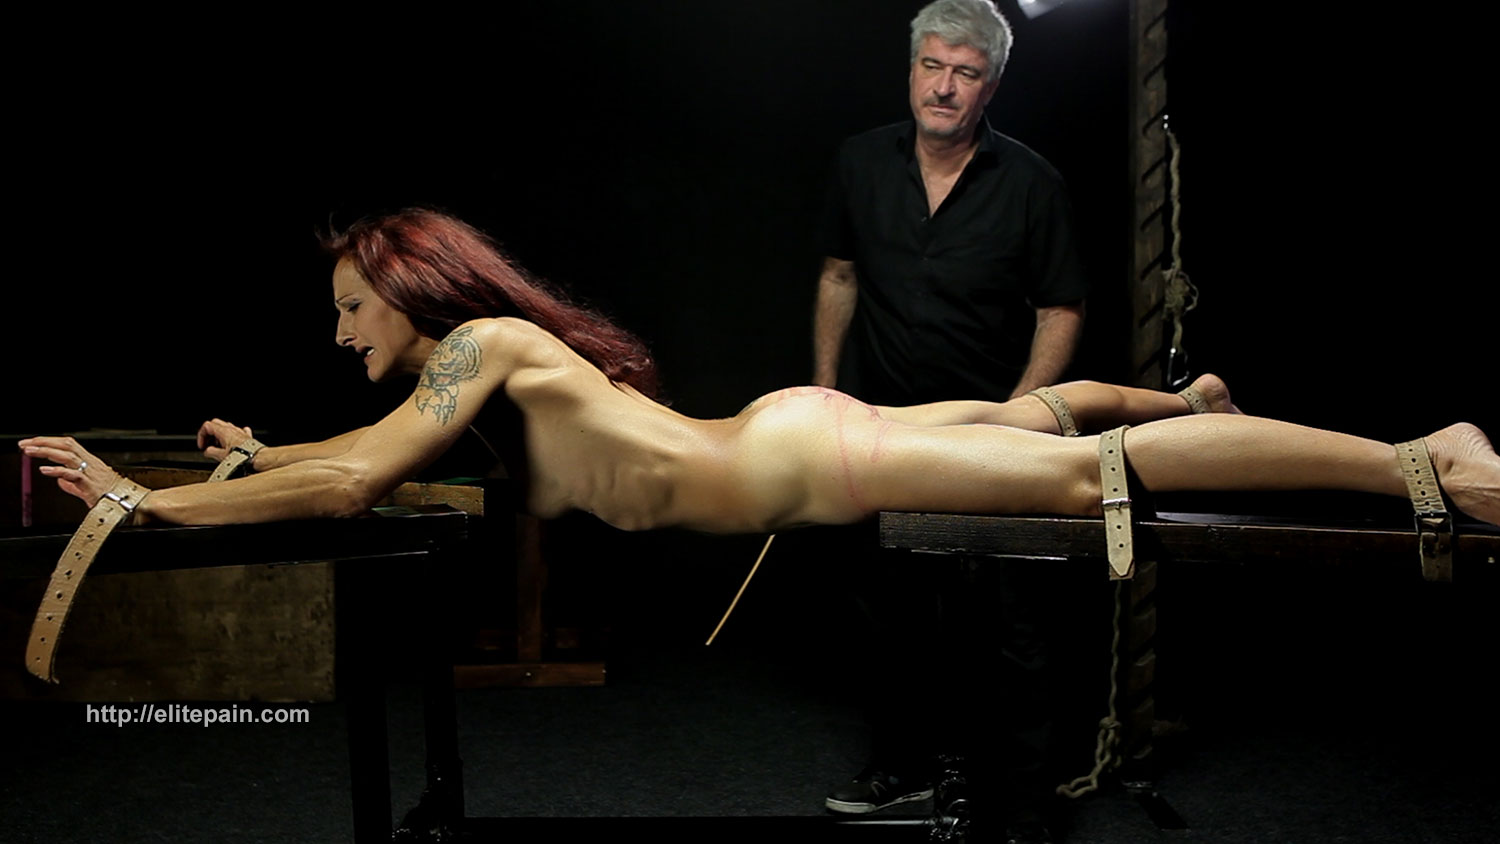 Hard corporal punishment for sophia 9